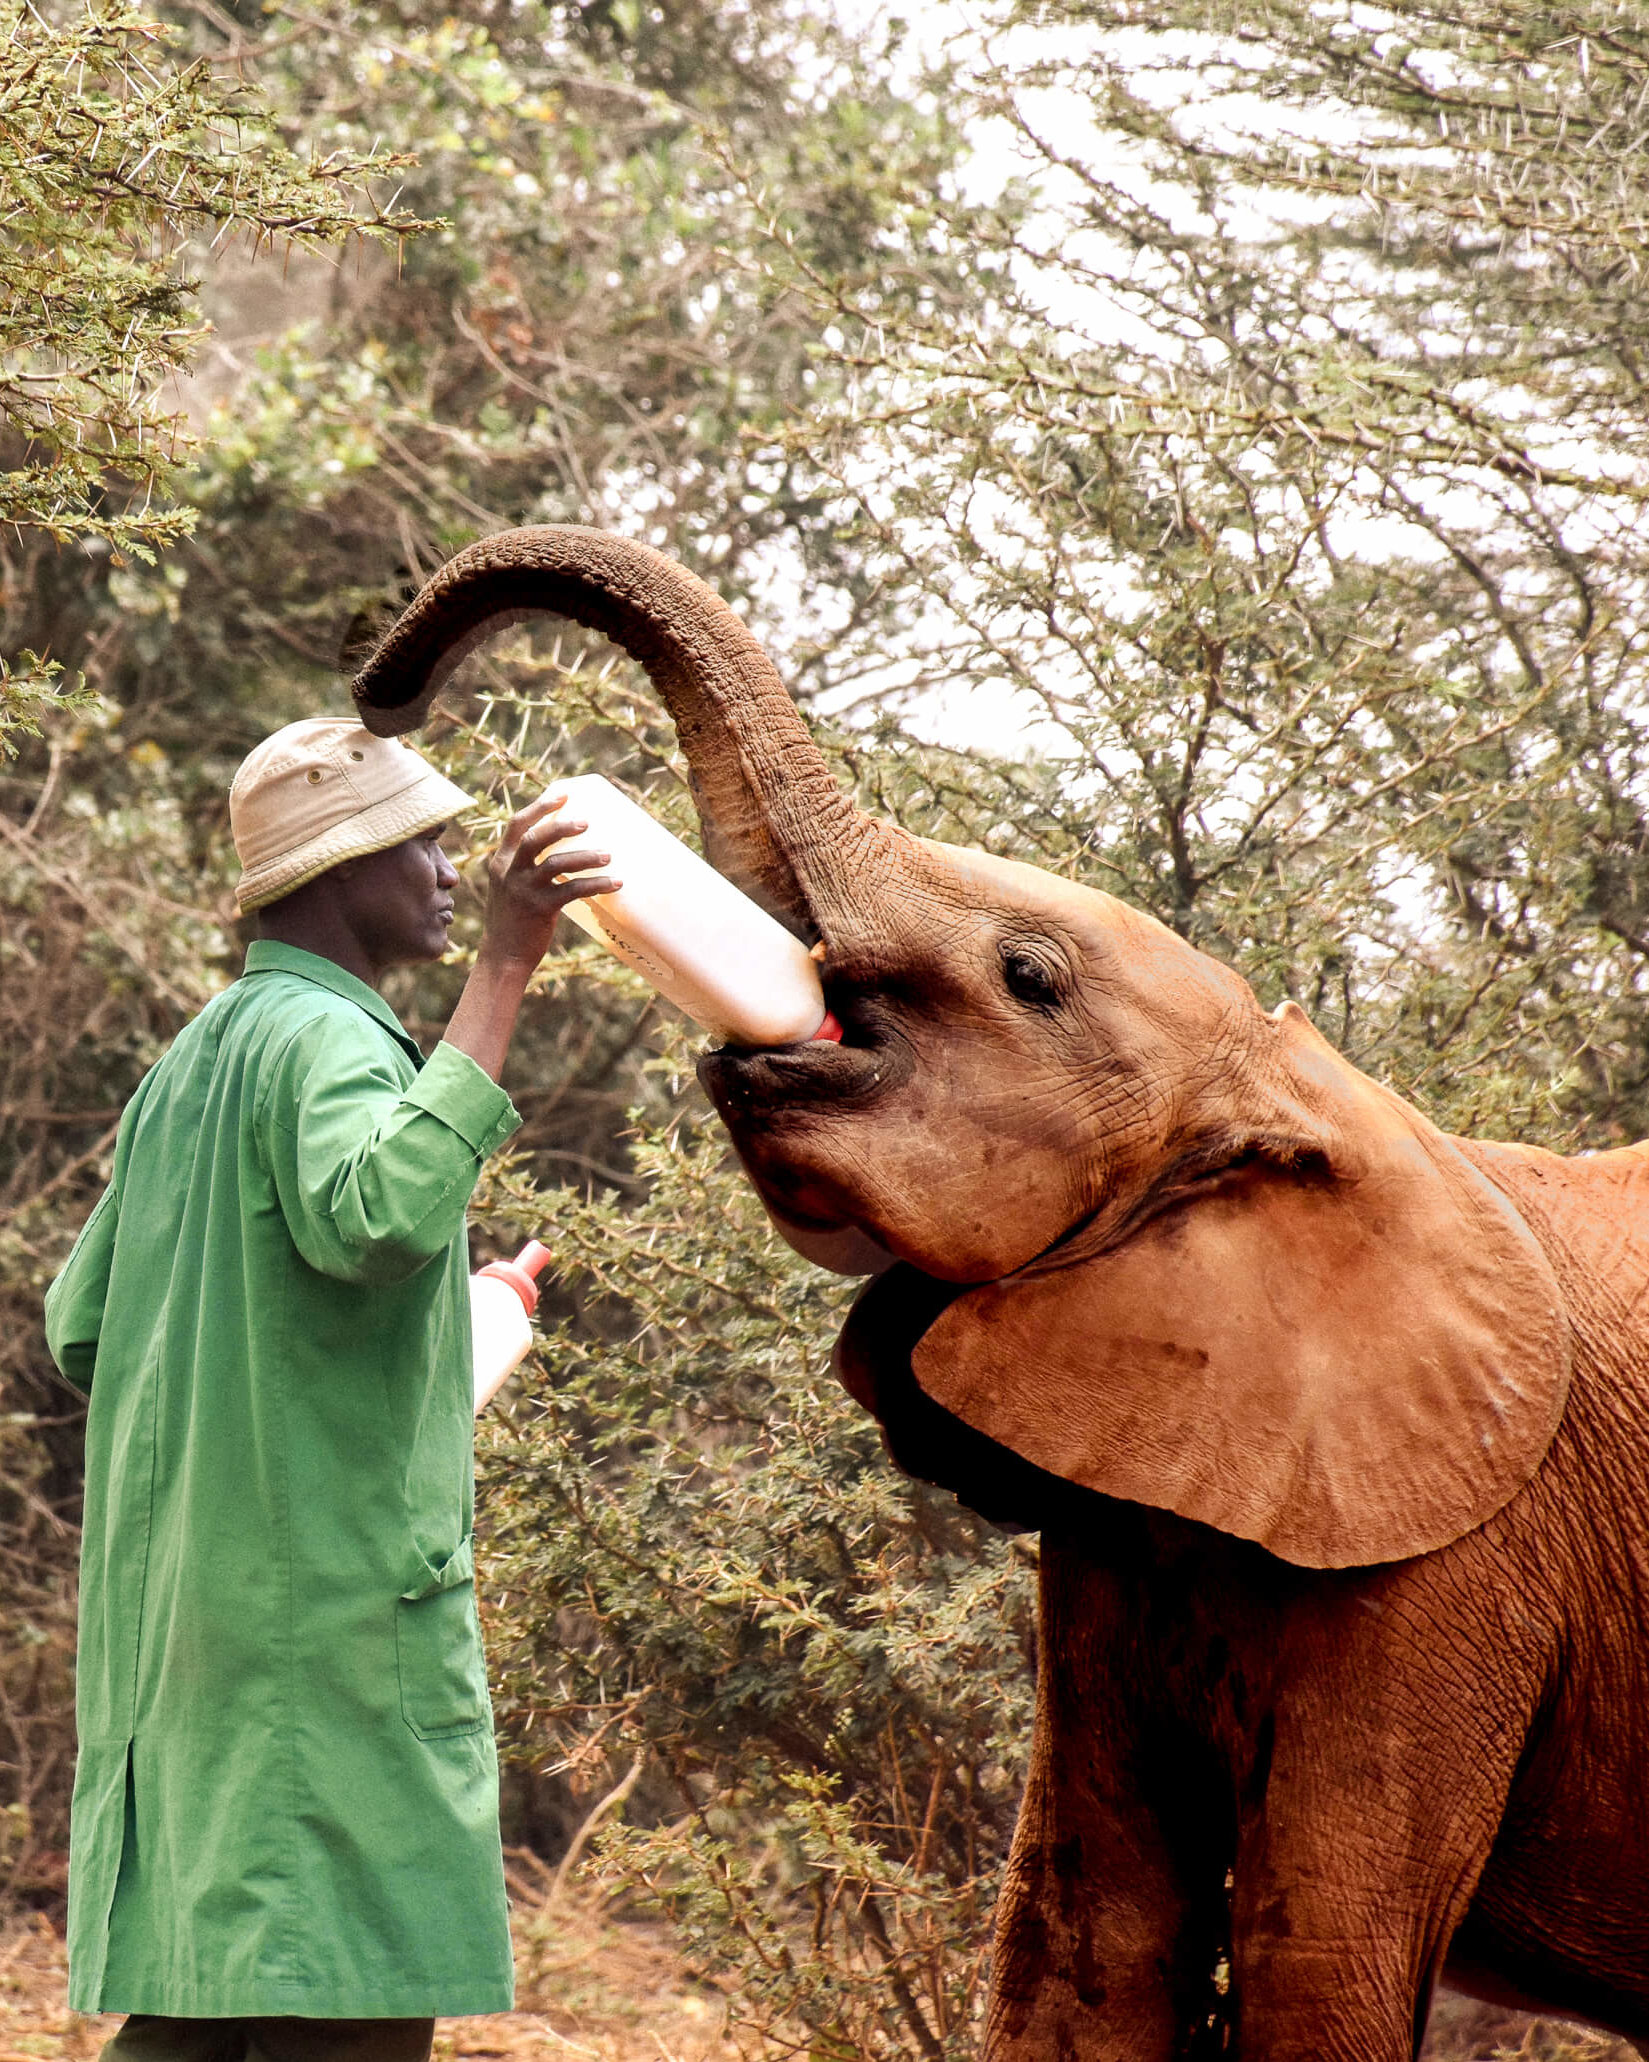 A Kenyan man in a green coat feeding a baby African elephant a bottle of milk